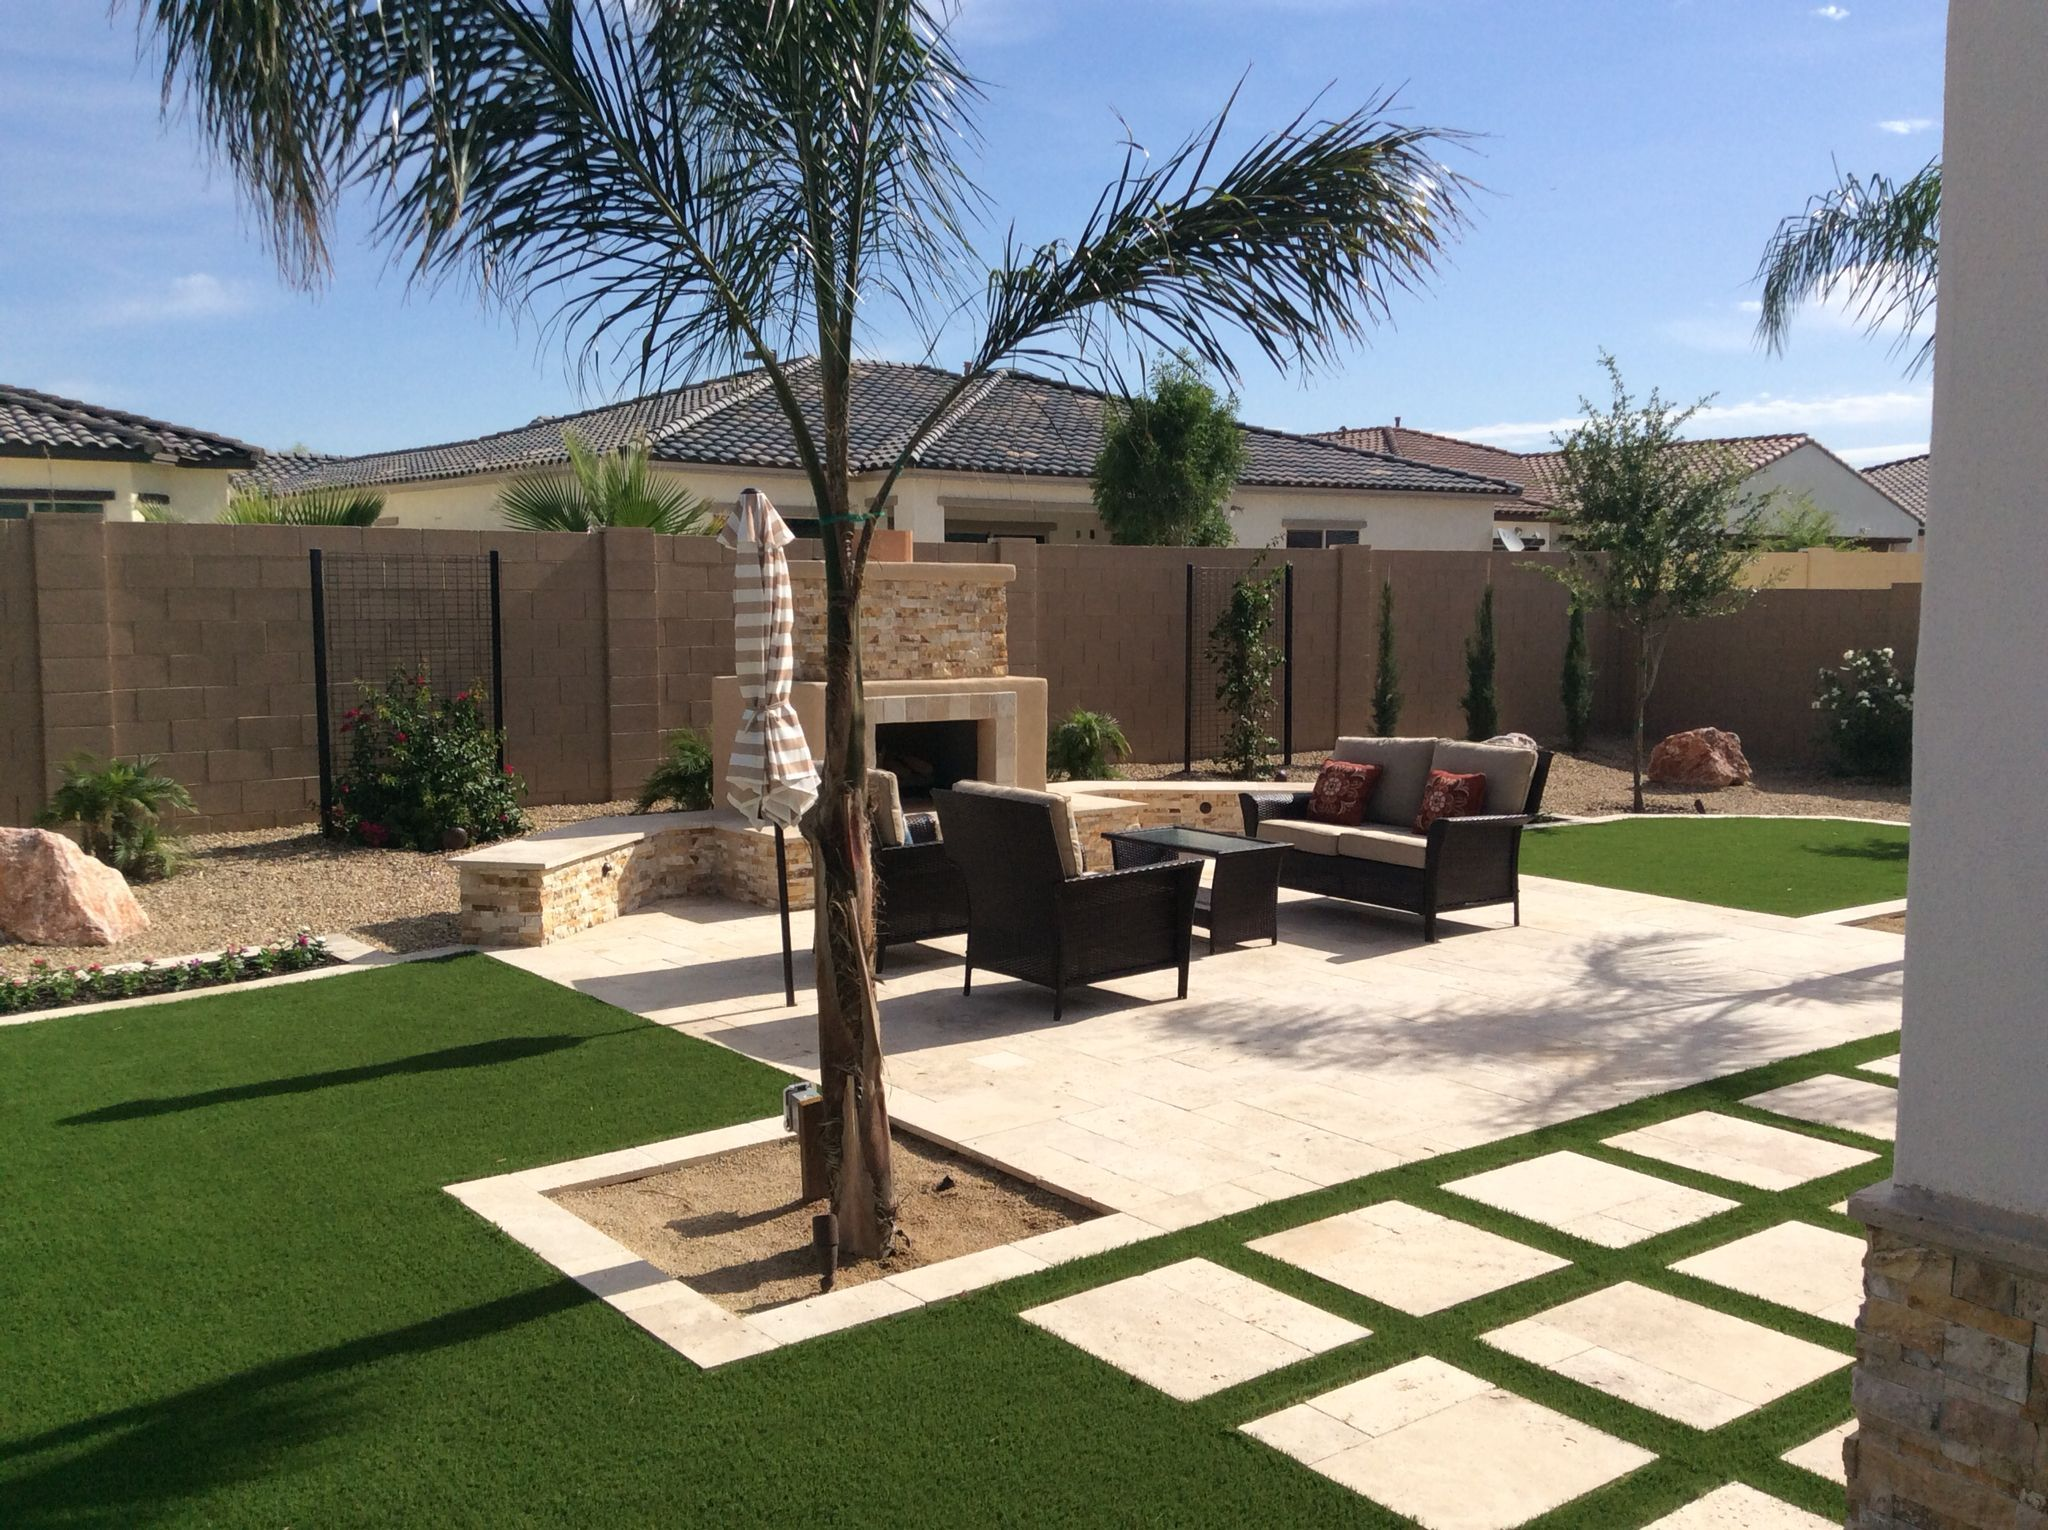 Travertine patio with Italian squares and artificial grass easy